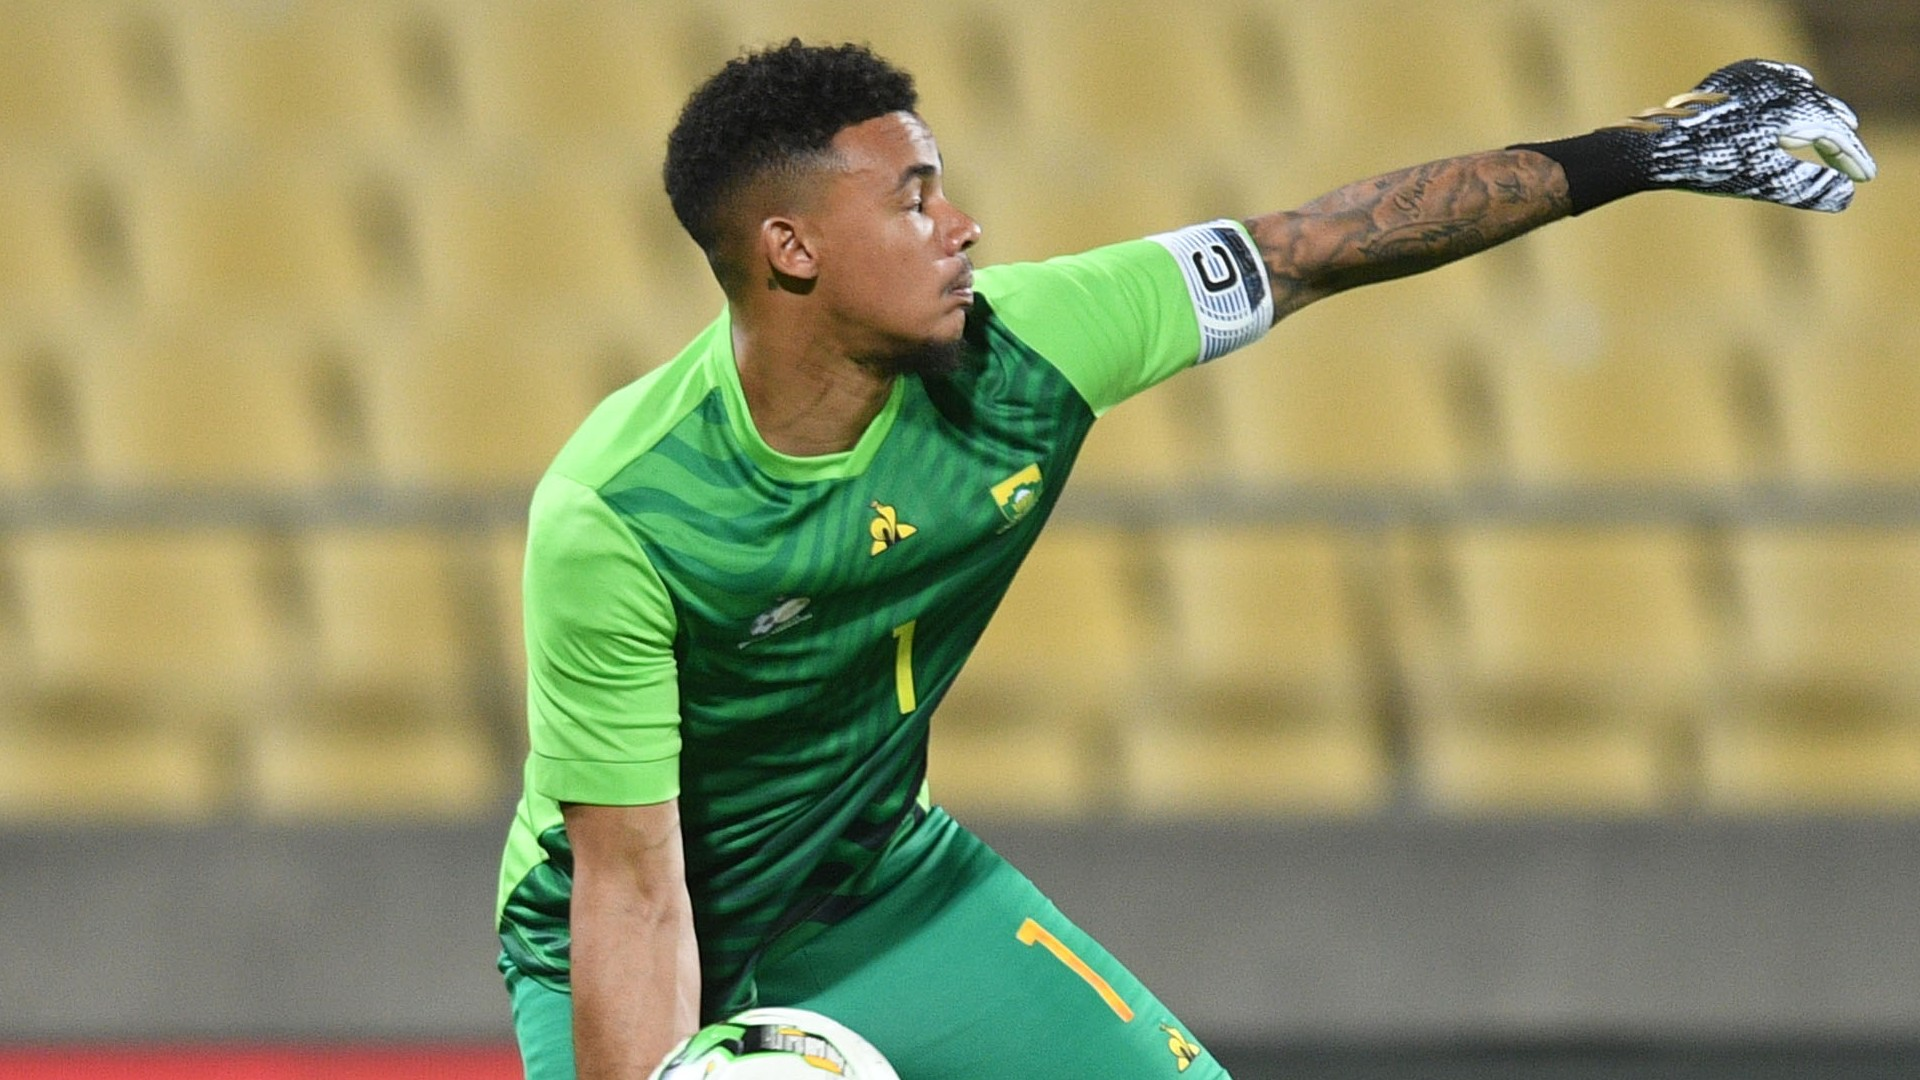 Top Five: PSL transfer rumours to watch – Williams to Orlando Pirates? Kaizer Chiefs linked with Gamildien